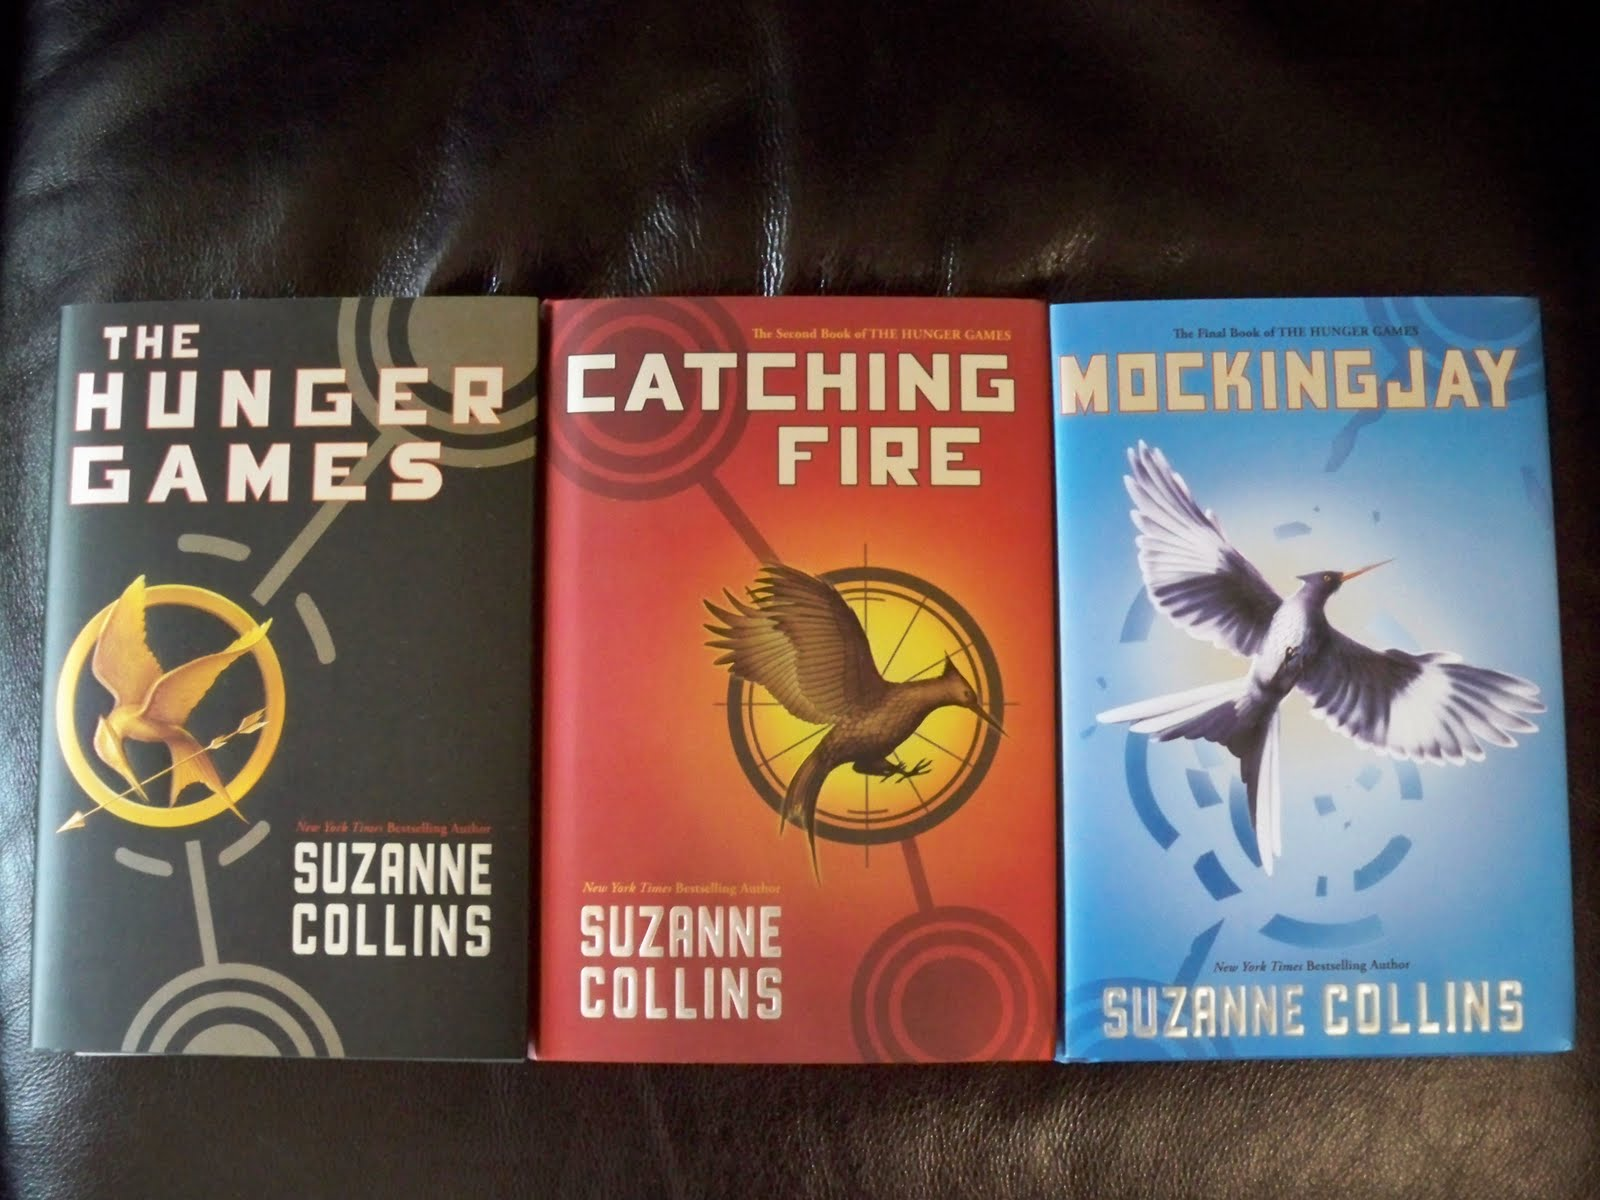 suzanne collins writing style Born in hartford, connecticut on august 10, 1962, collins is the daughter of a us air force officer and was a successful television writer before turning her talents to writing novels currently residing in sandy hook, connecticut with her husband and their two children, suzanne collins is amazoncom's best-selling author of all time.